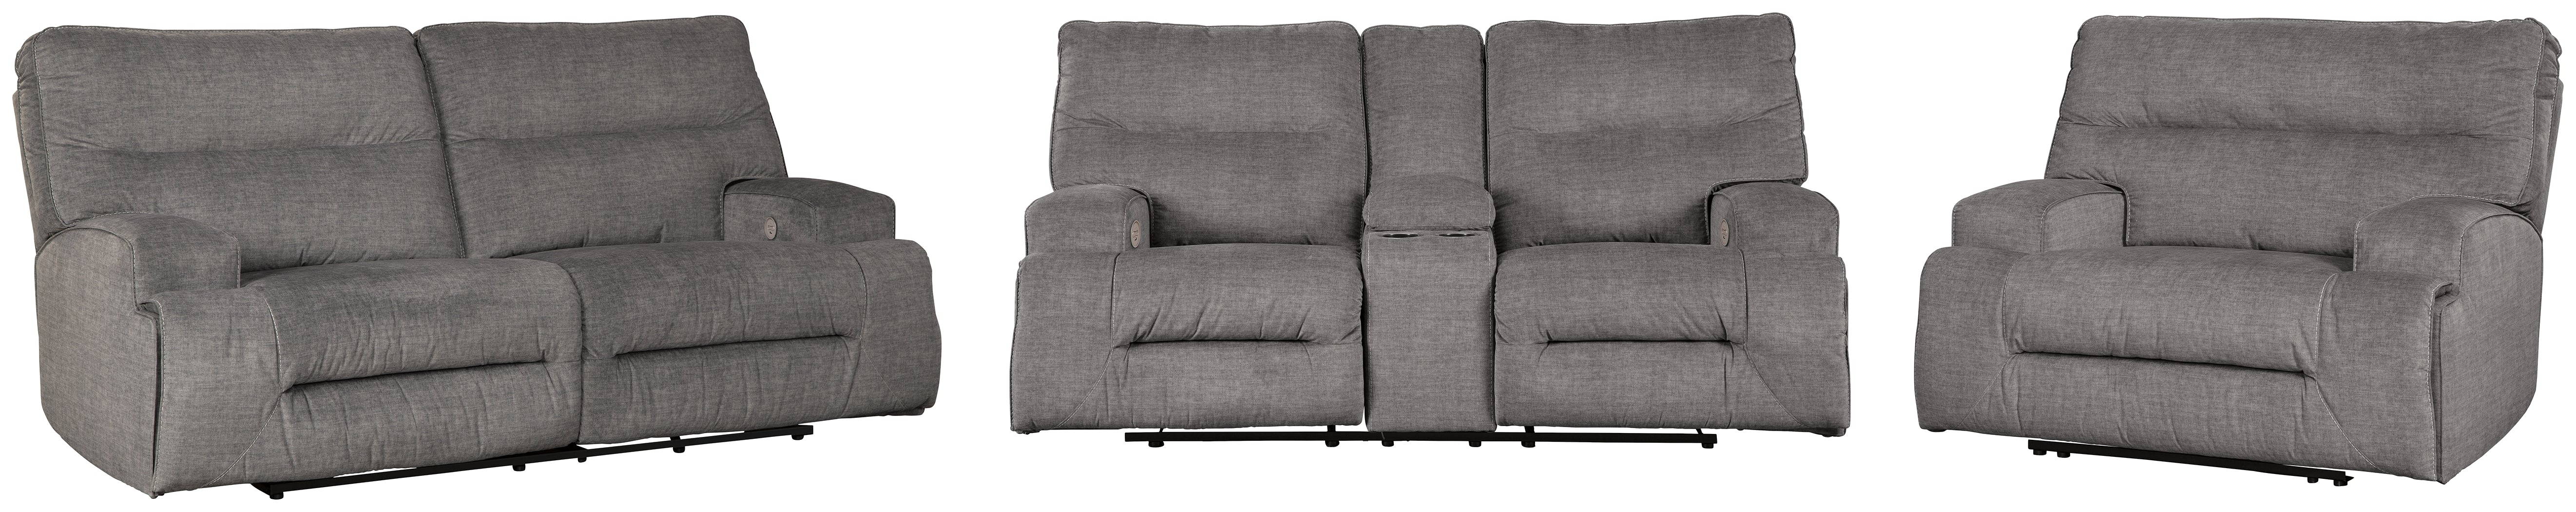 Coombs Signature Design 3-Piece Upholstery Package